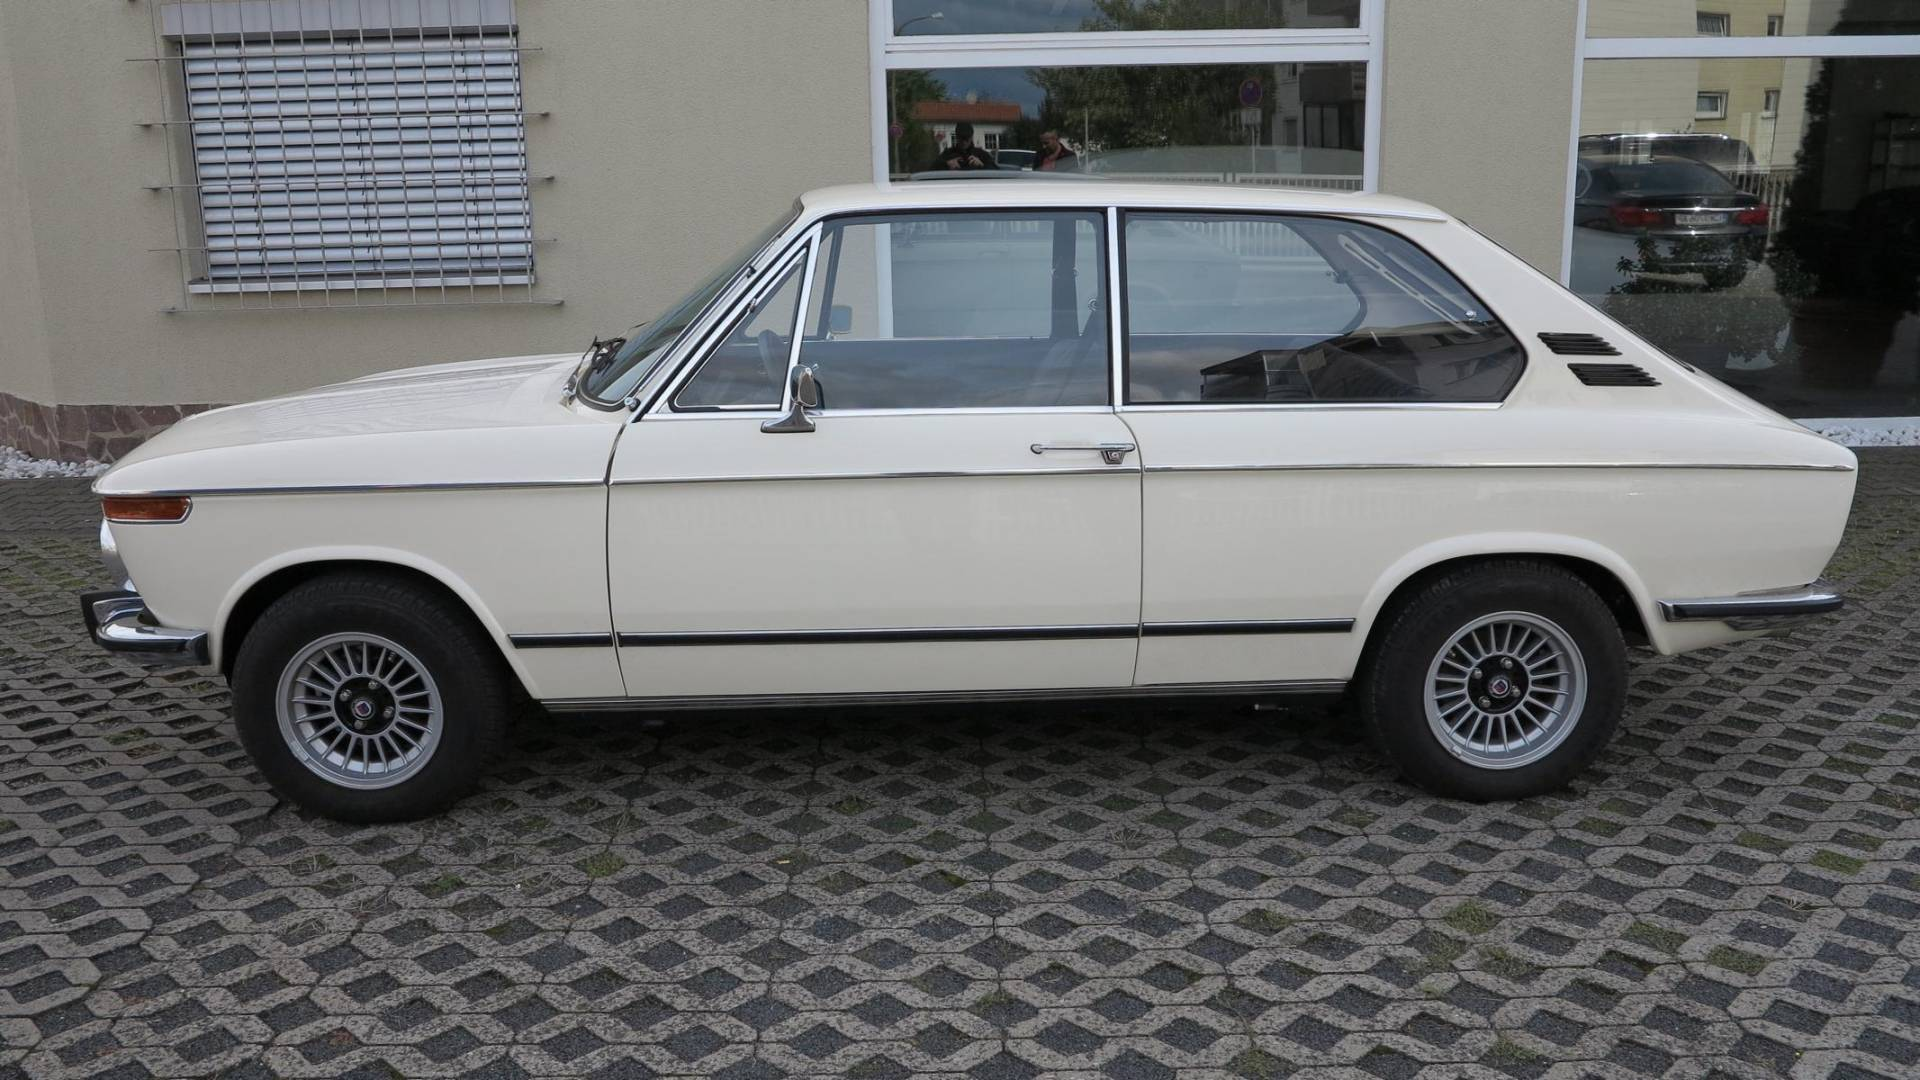 bmw 2002 touring 1973 kaufen classic trader. Black Bedroom Furniture Sets. Home Design Ideas